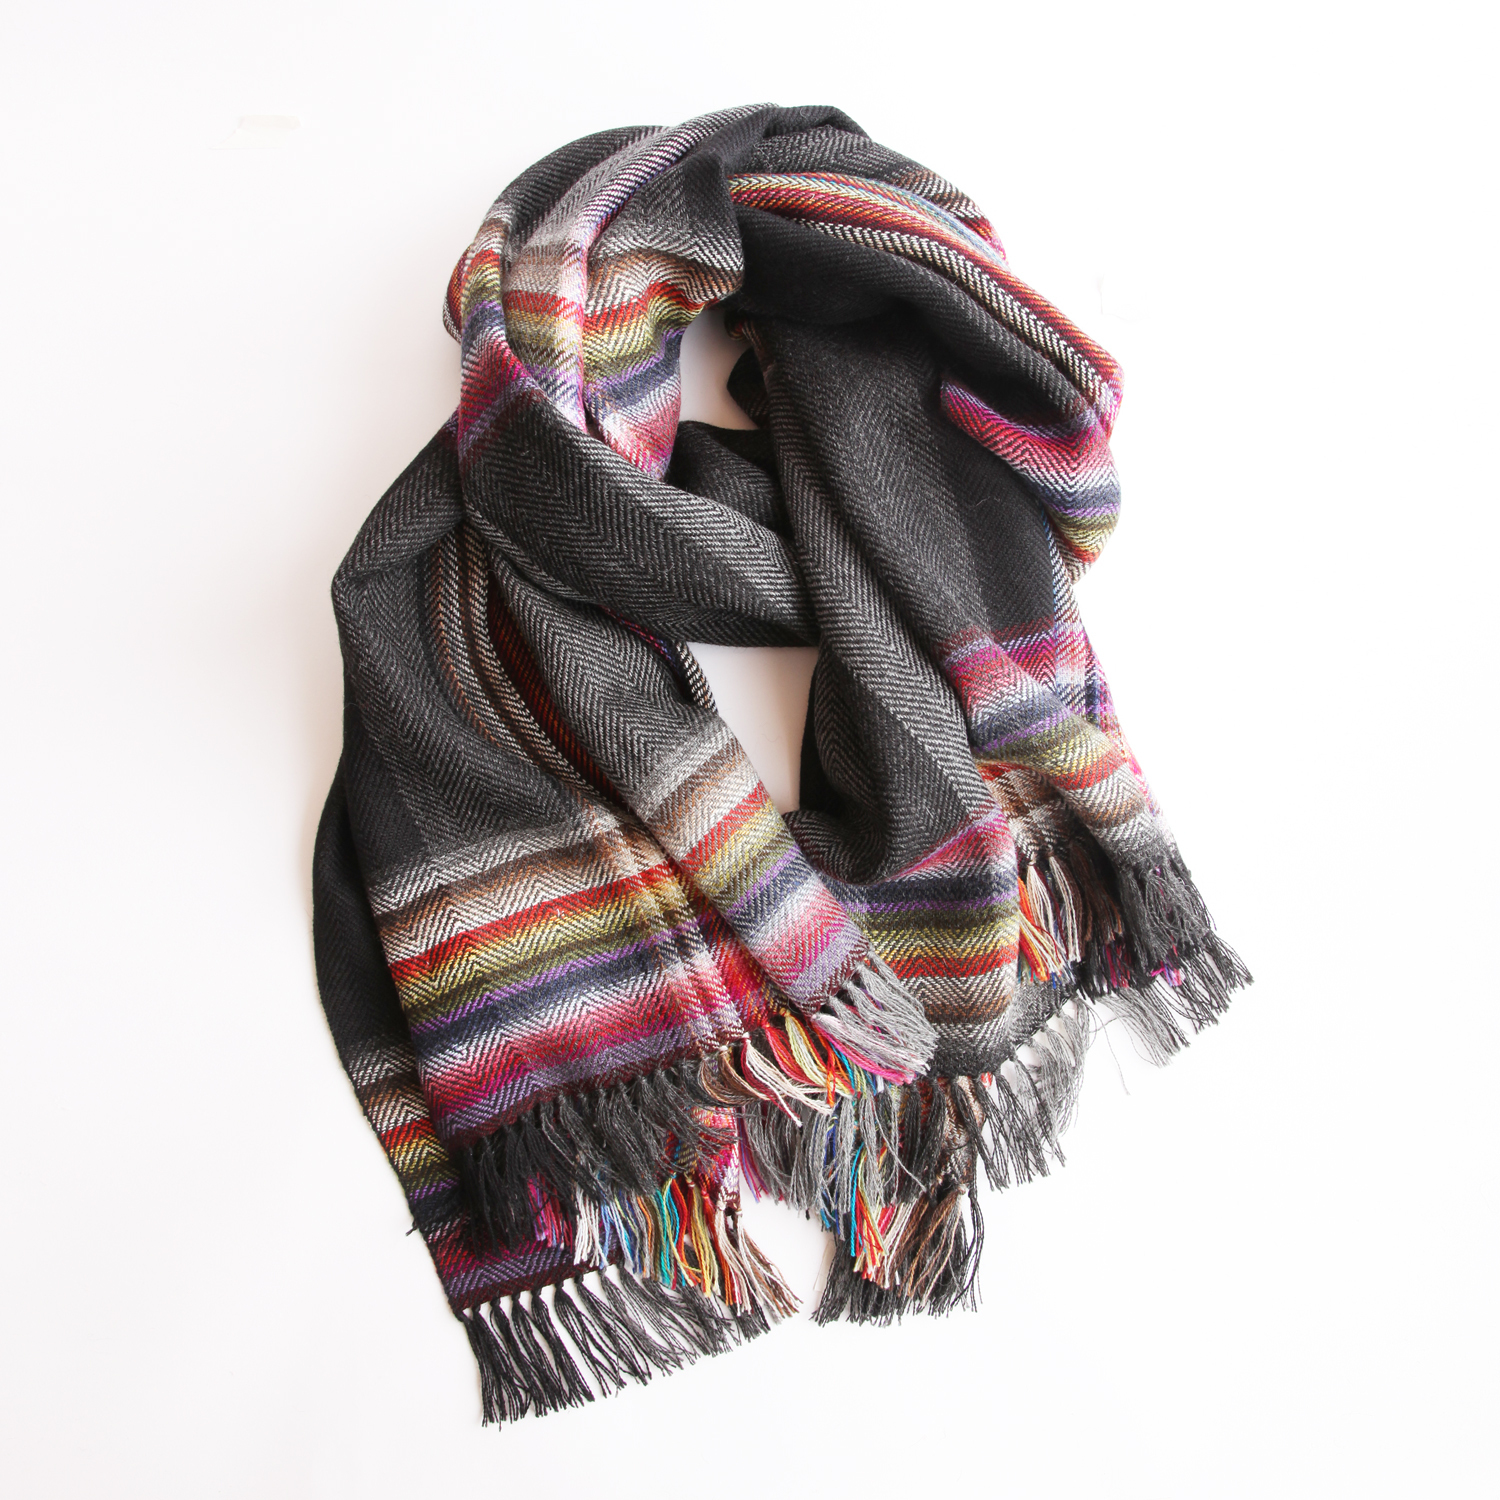 THE INOUE BROTHERS/Multi Coloured Scarf/Black